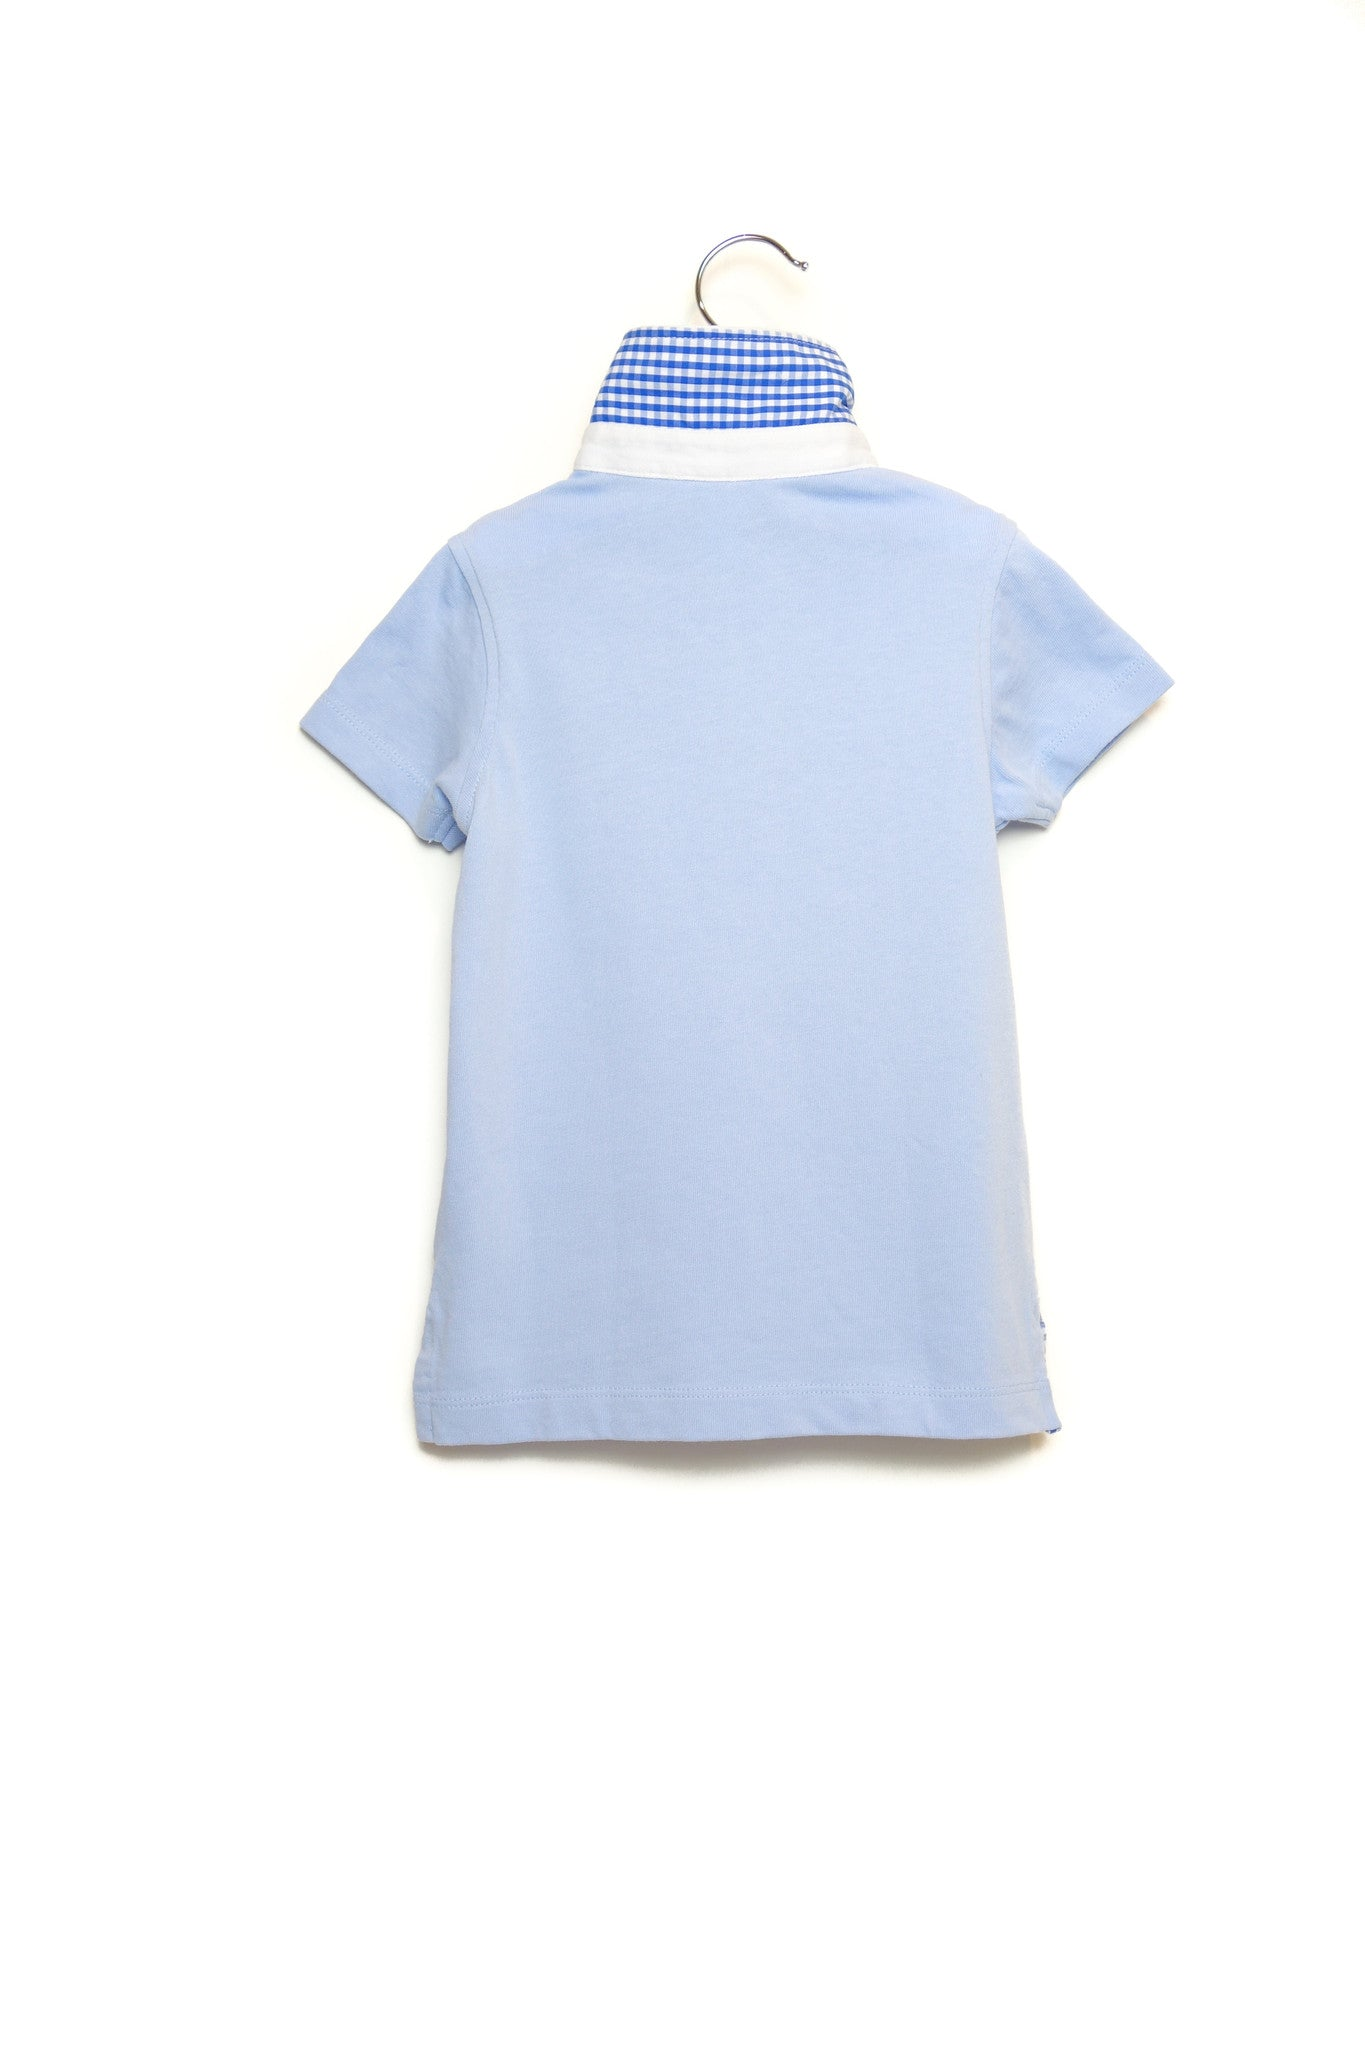 Polo 2T, Jacadi at Retykle - Online Baby & Kids Clothing Up to 90% Off